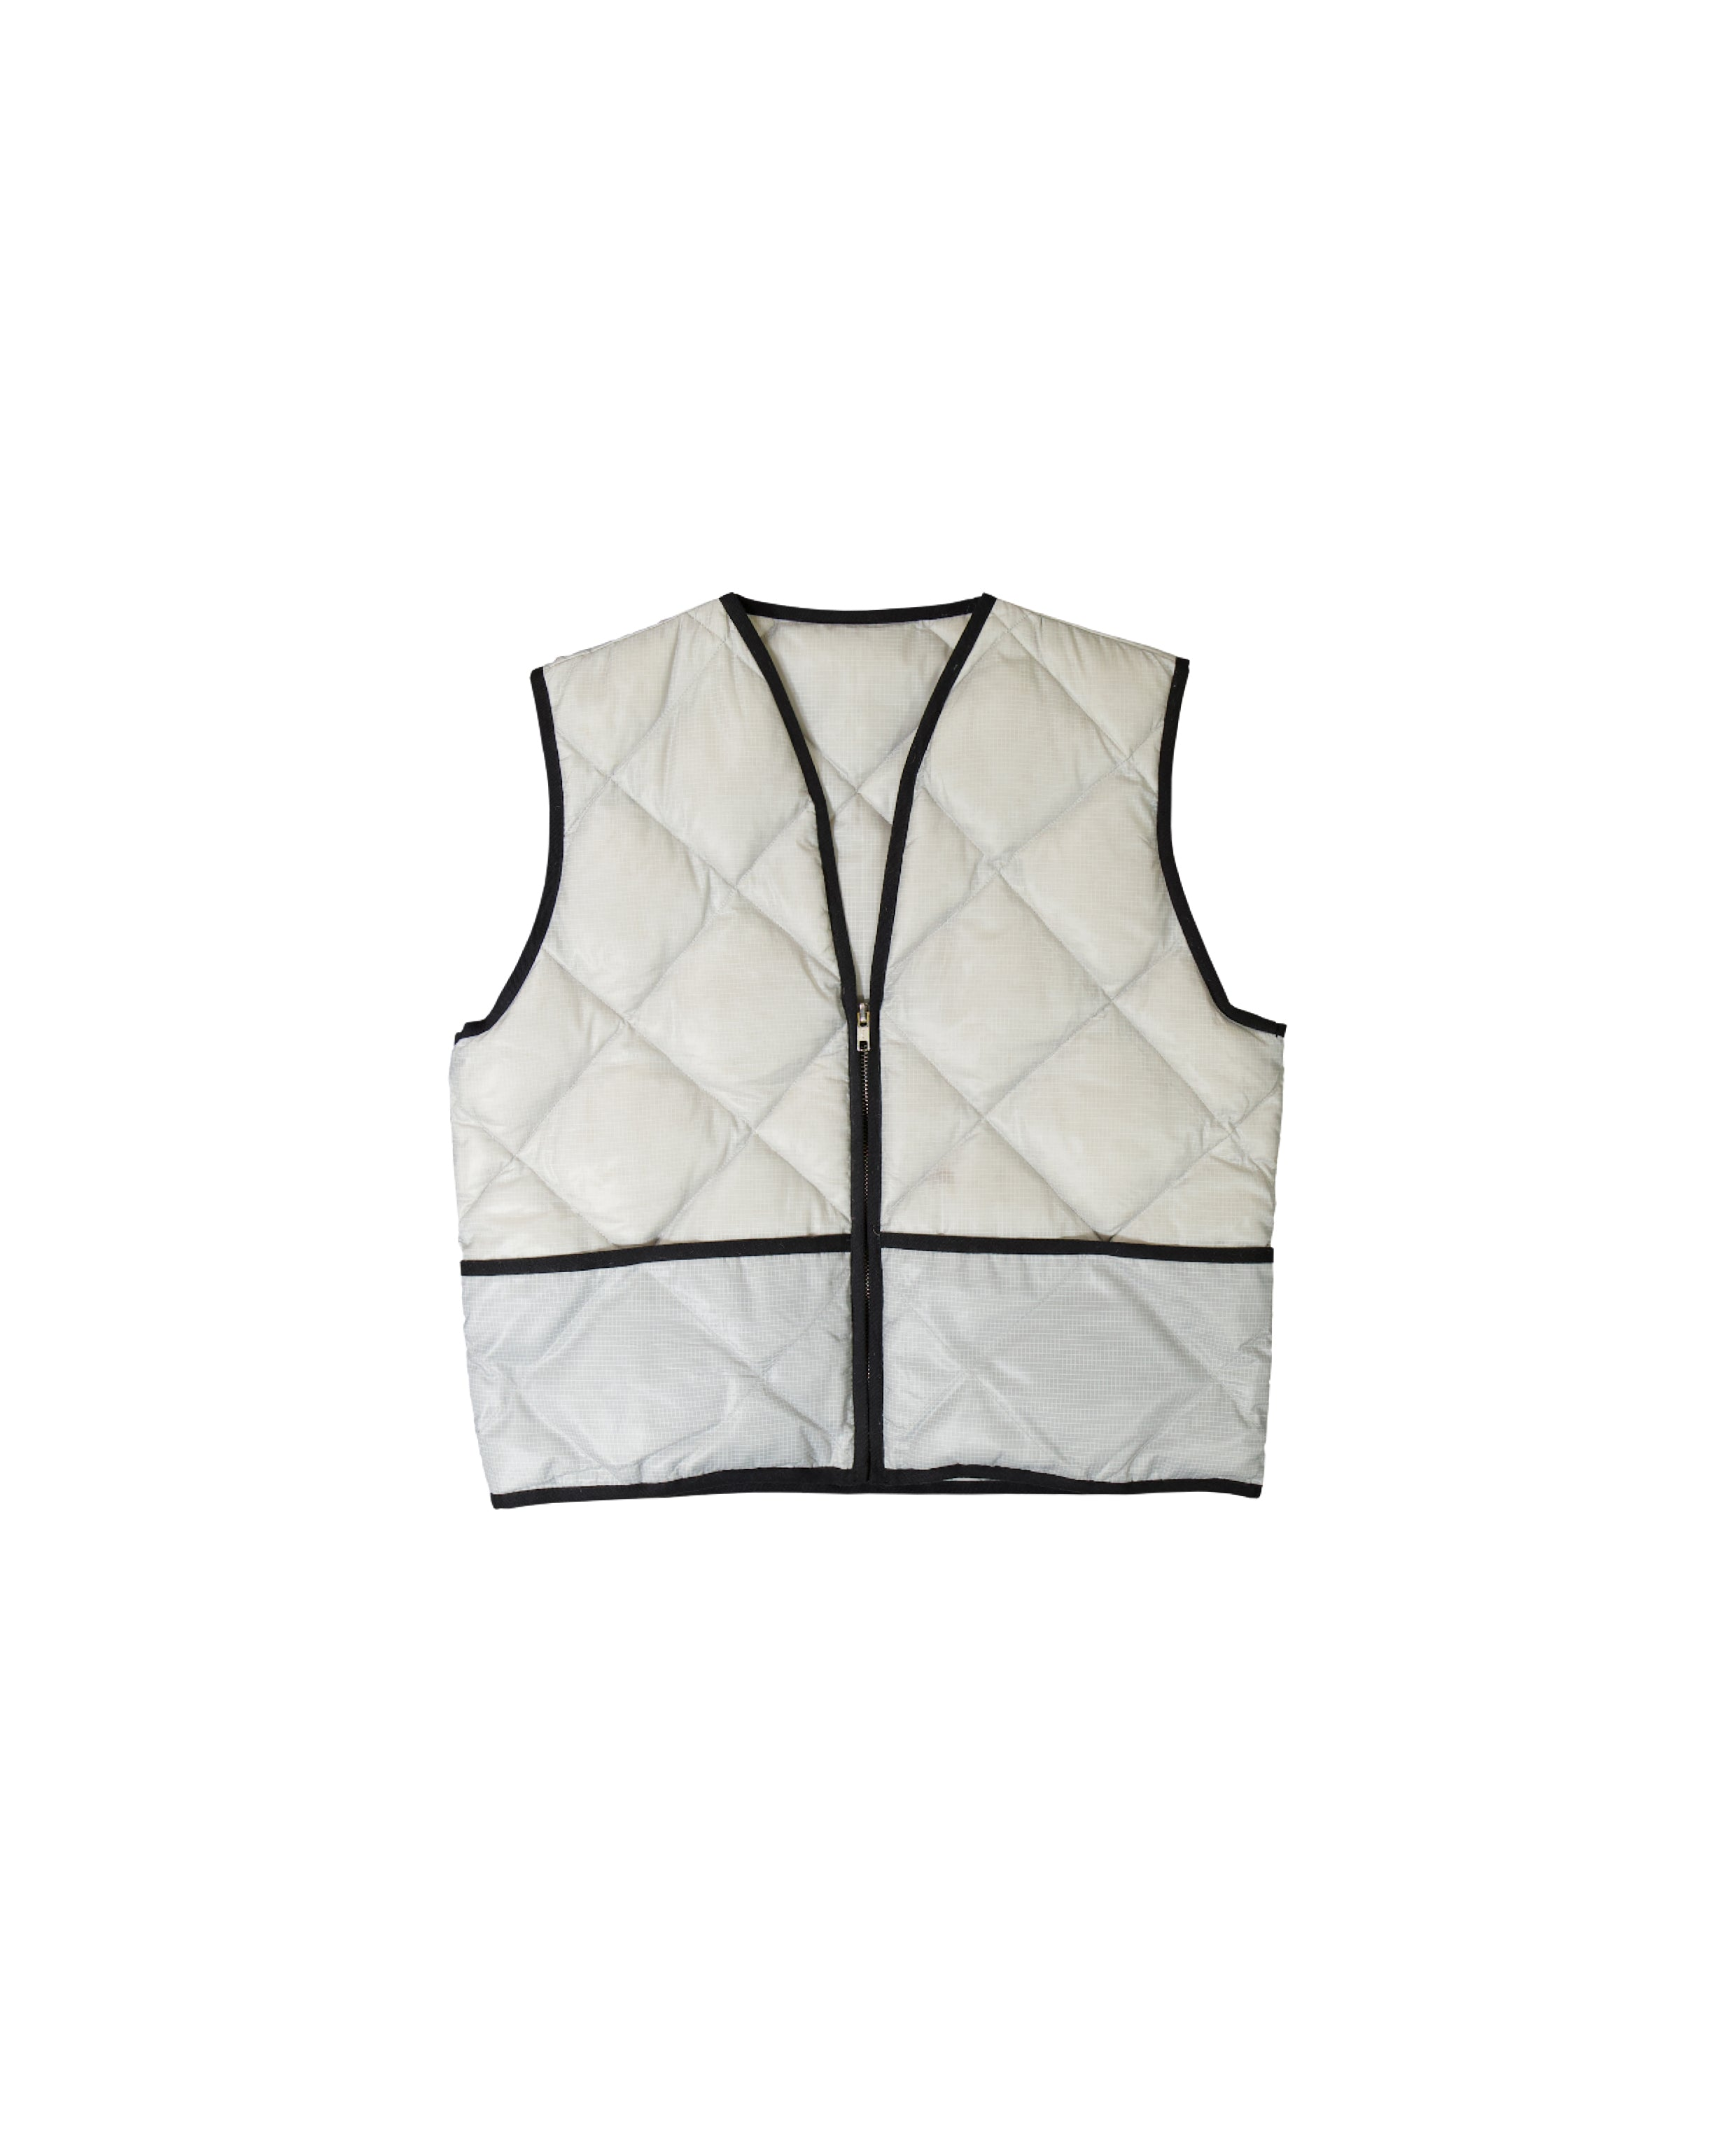 STUDIO VEST - LIGHT GREY